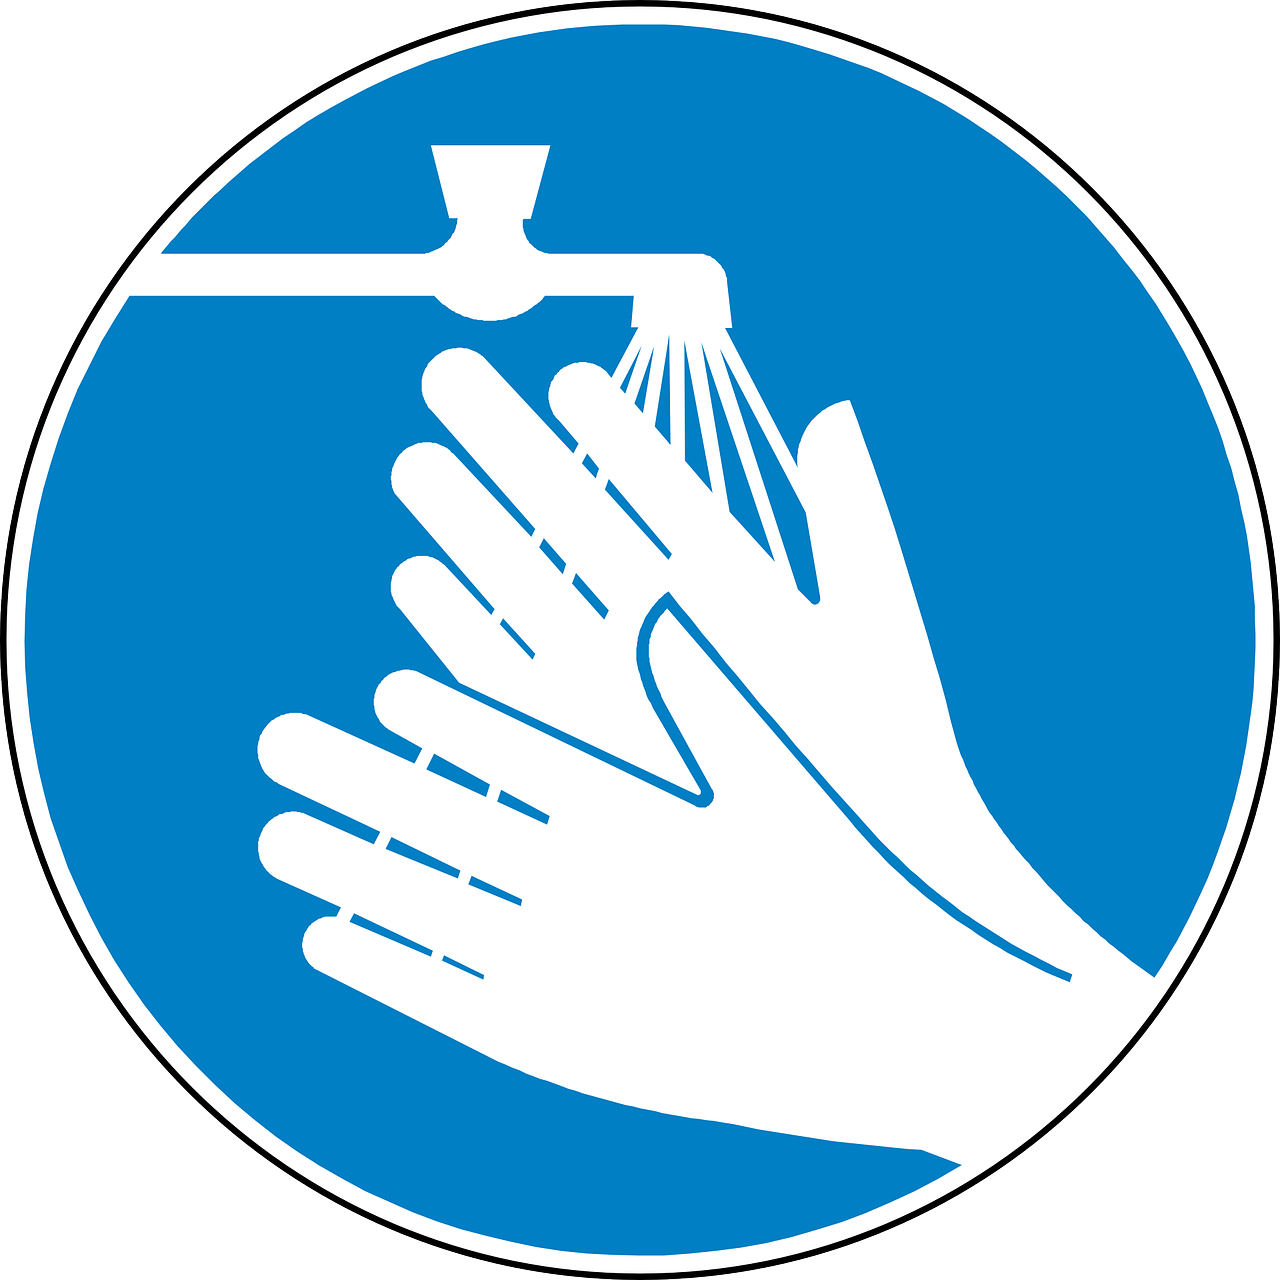 Have you washed your hands microbe post buycottarizona Image collections